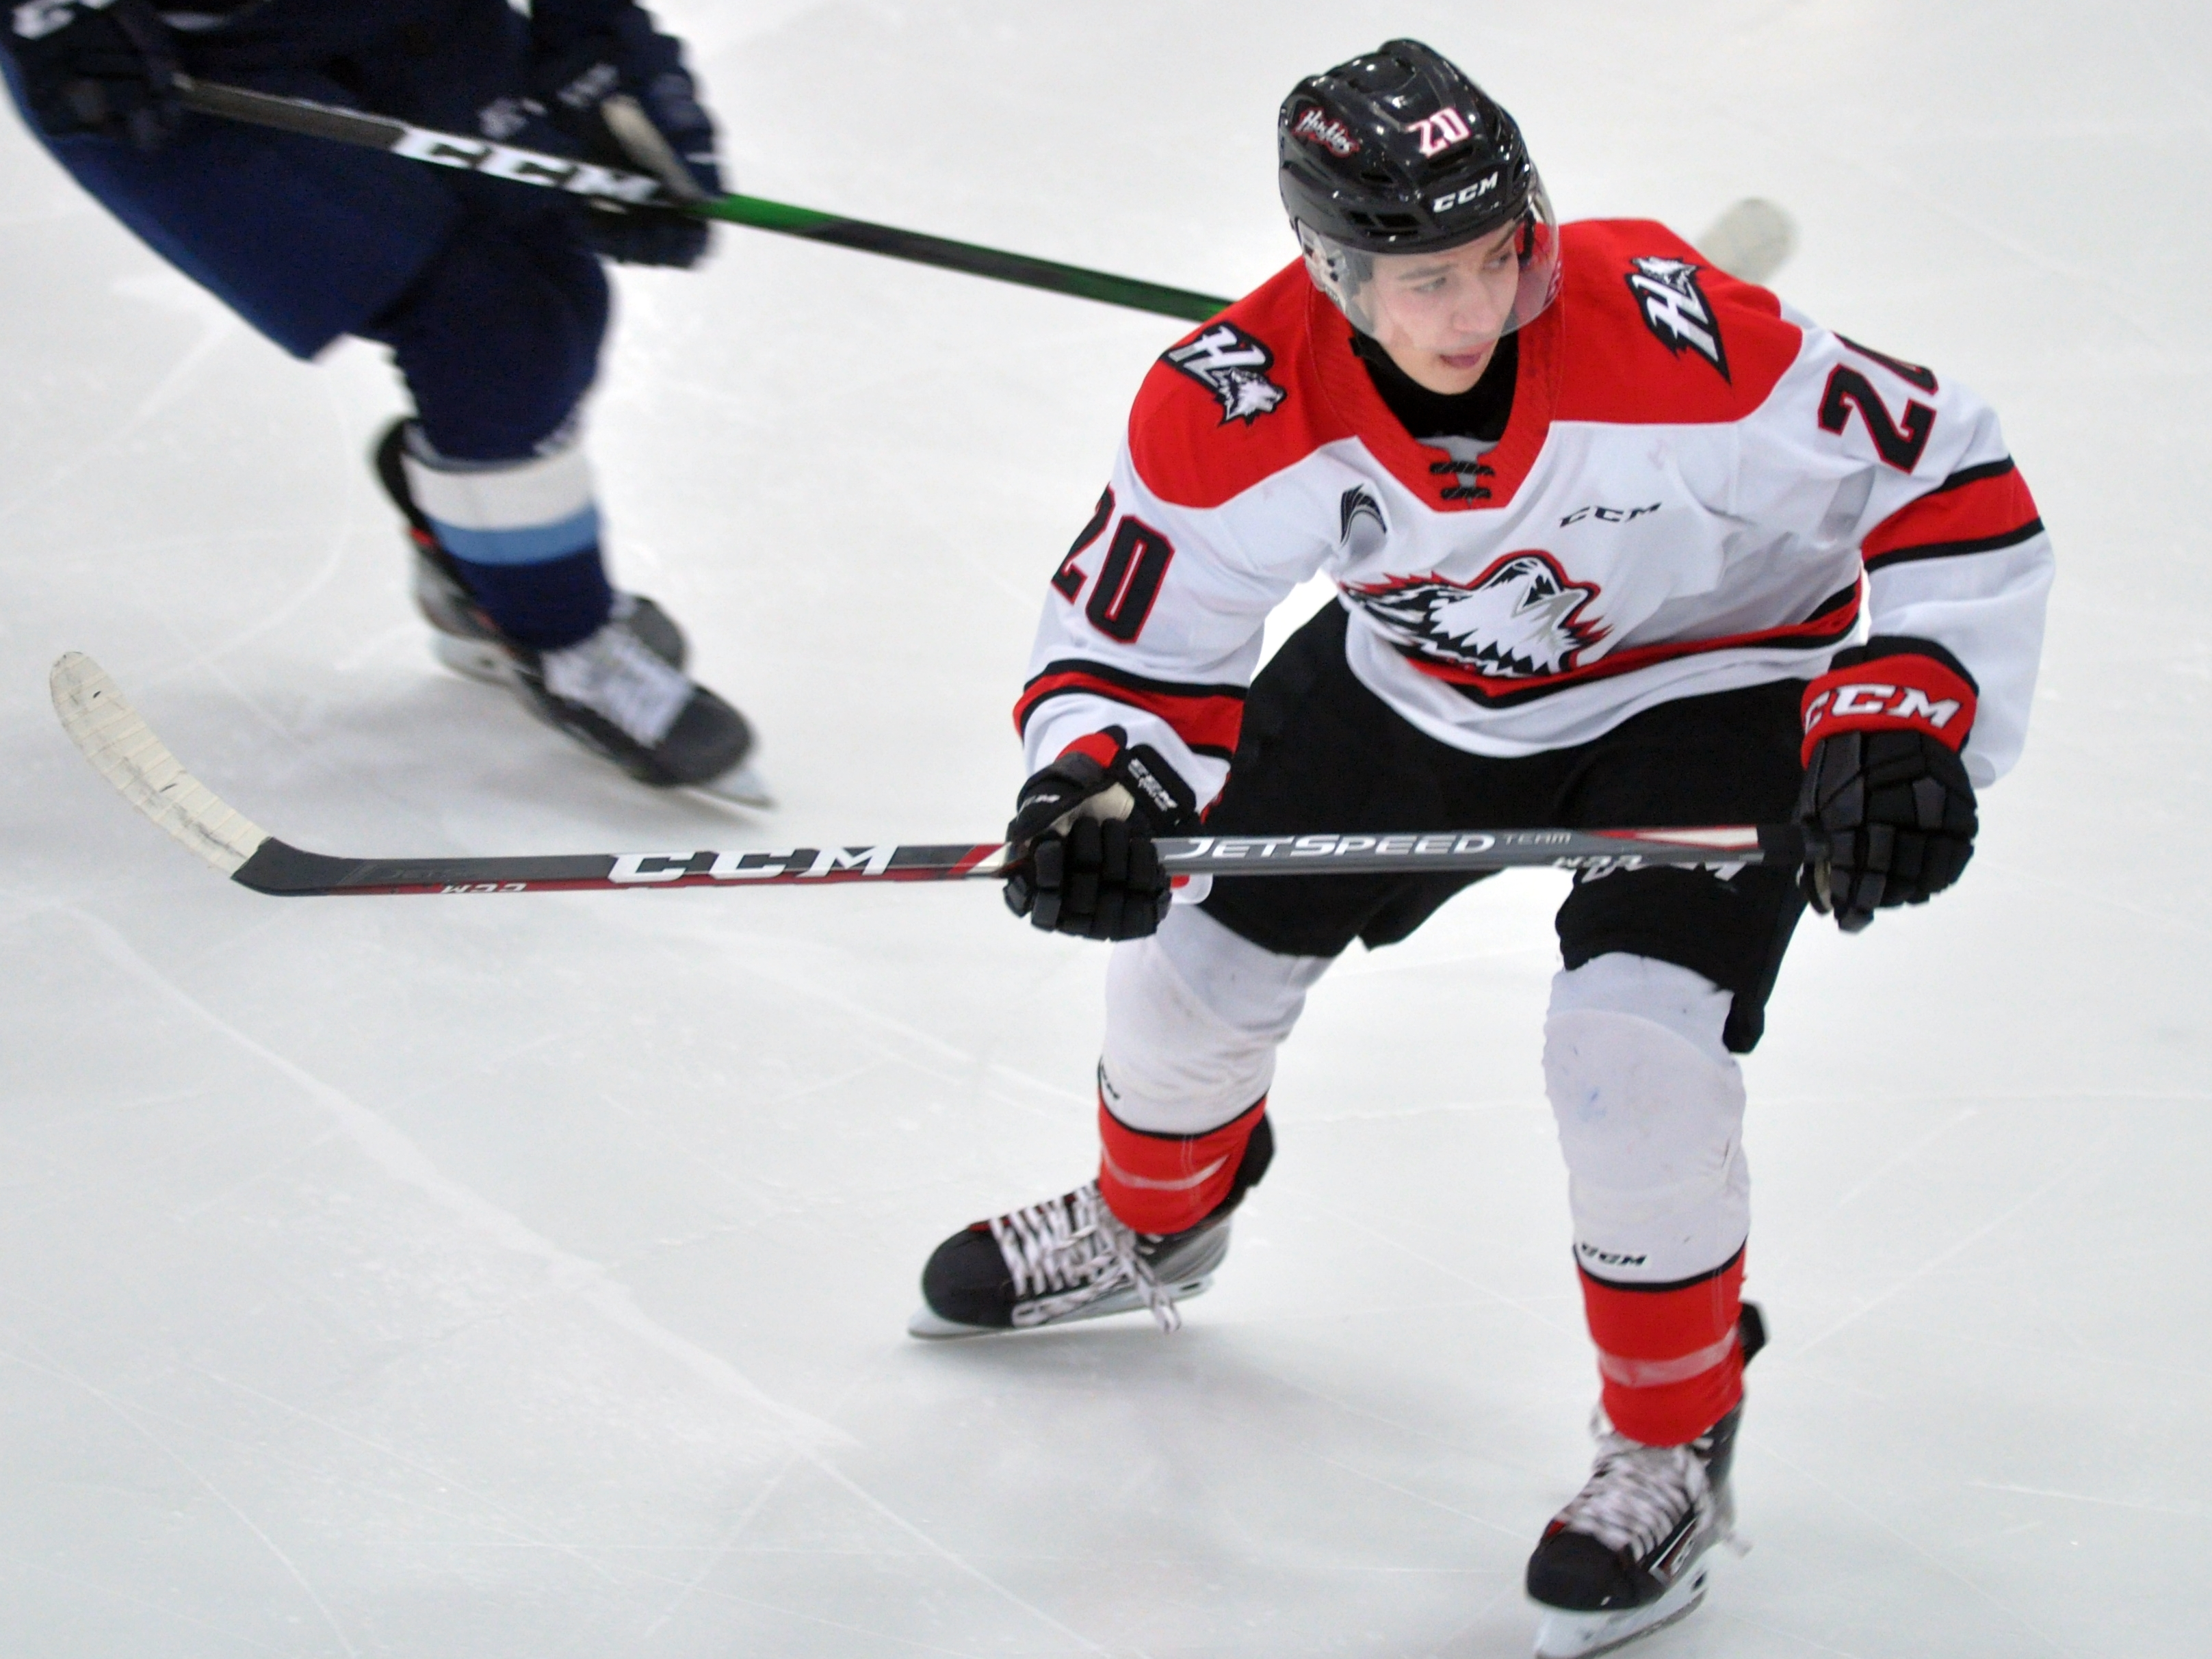 Anthony Turcotte Huskies Rouyn-Noranda